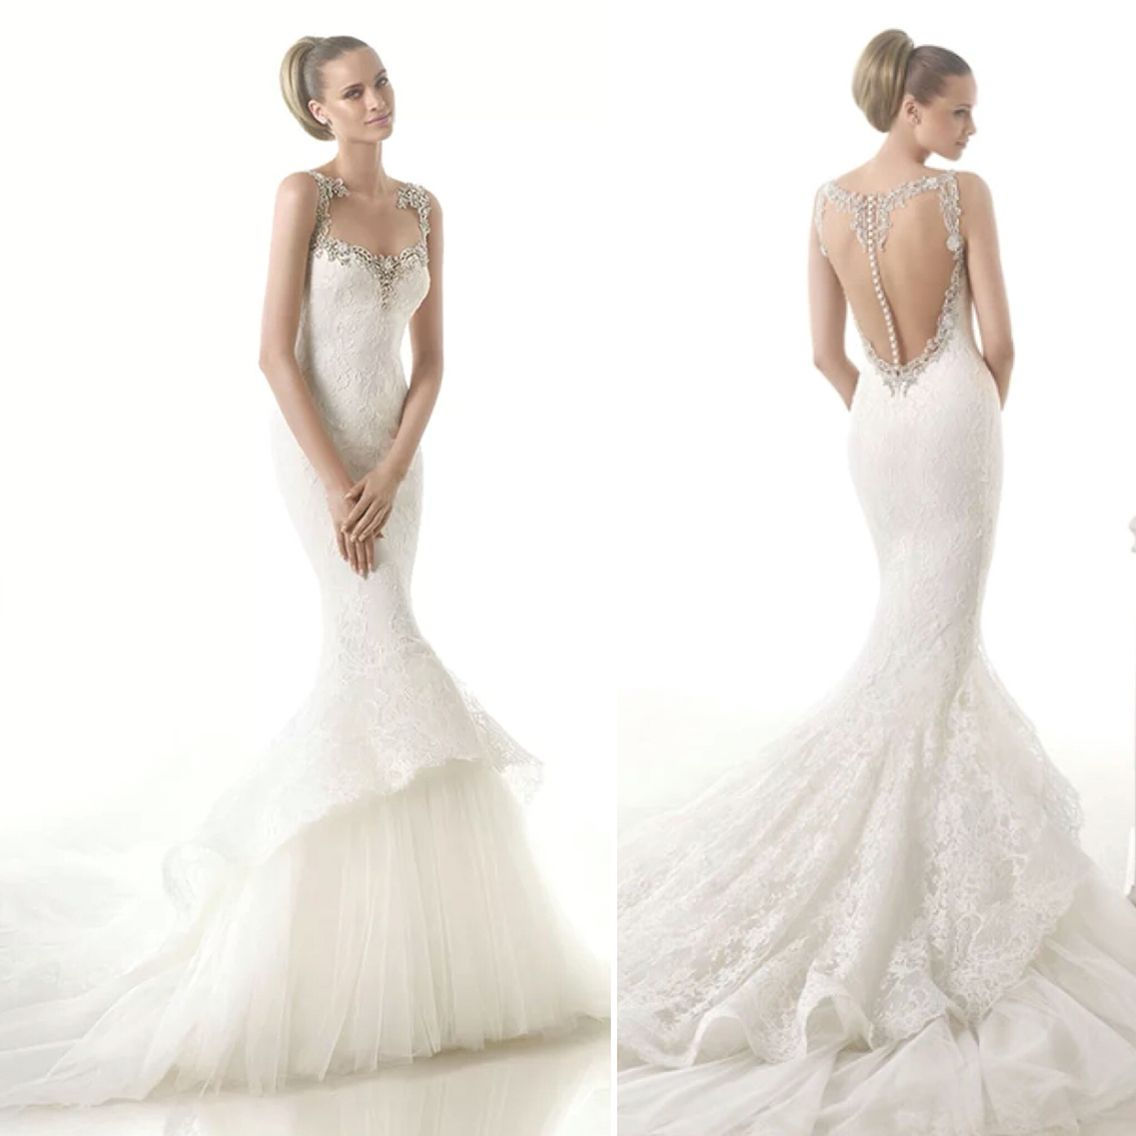 We are having this gorgeous  wedding gown in size 10 coming to Perth in early Feb for a photoshoot project. Perth bride-to-be who wants to try it on? Let us know if you are interested. We have more items coming soon